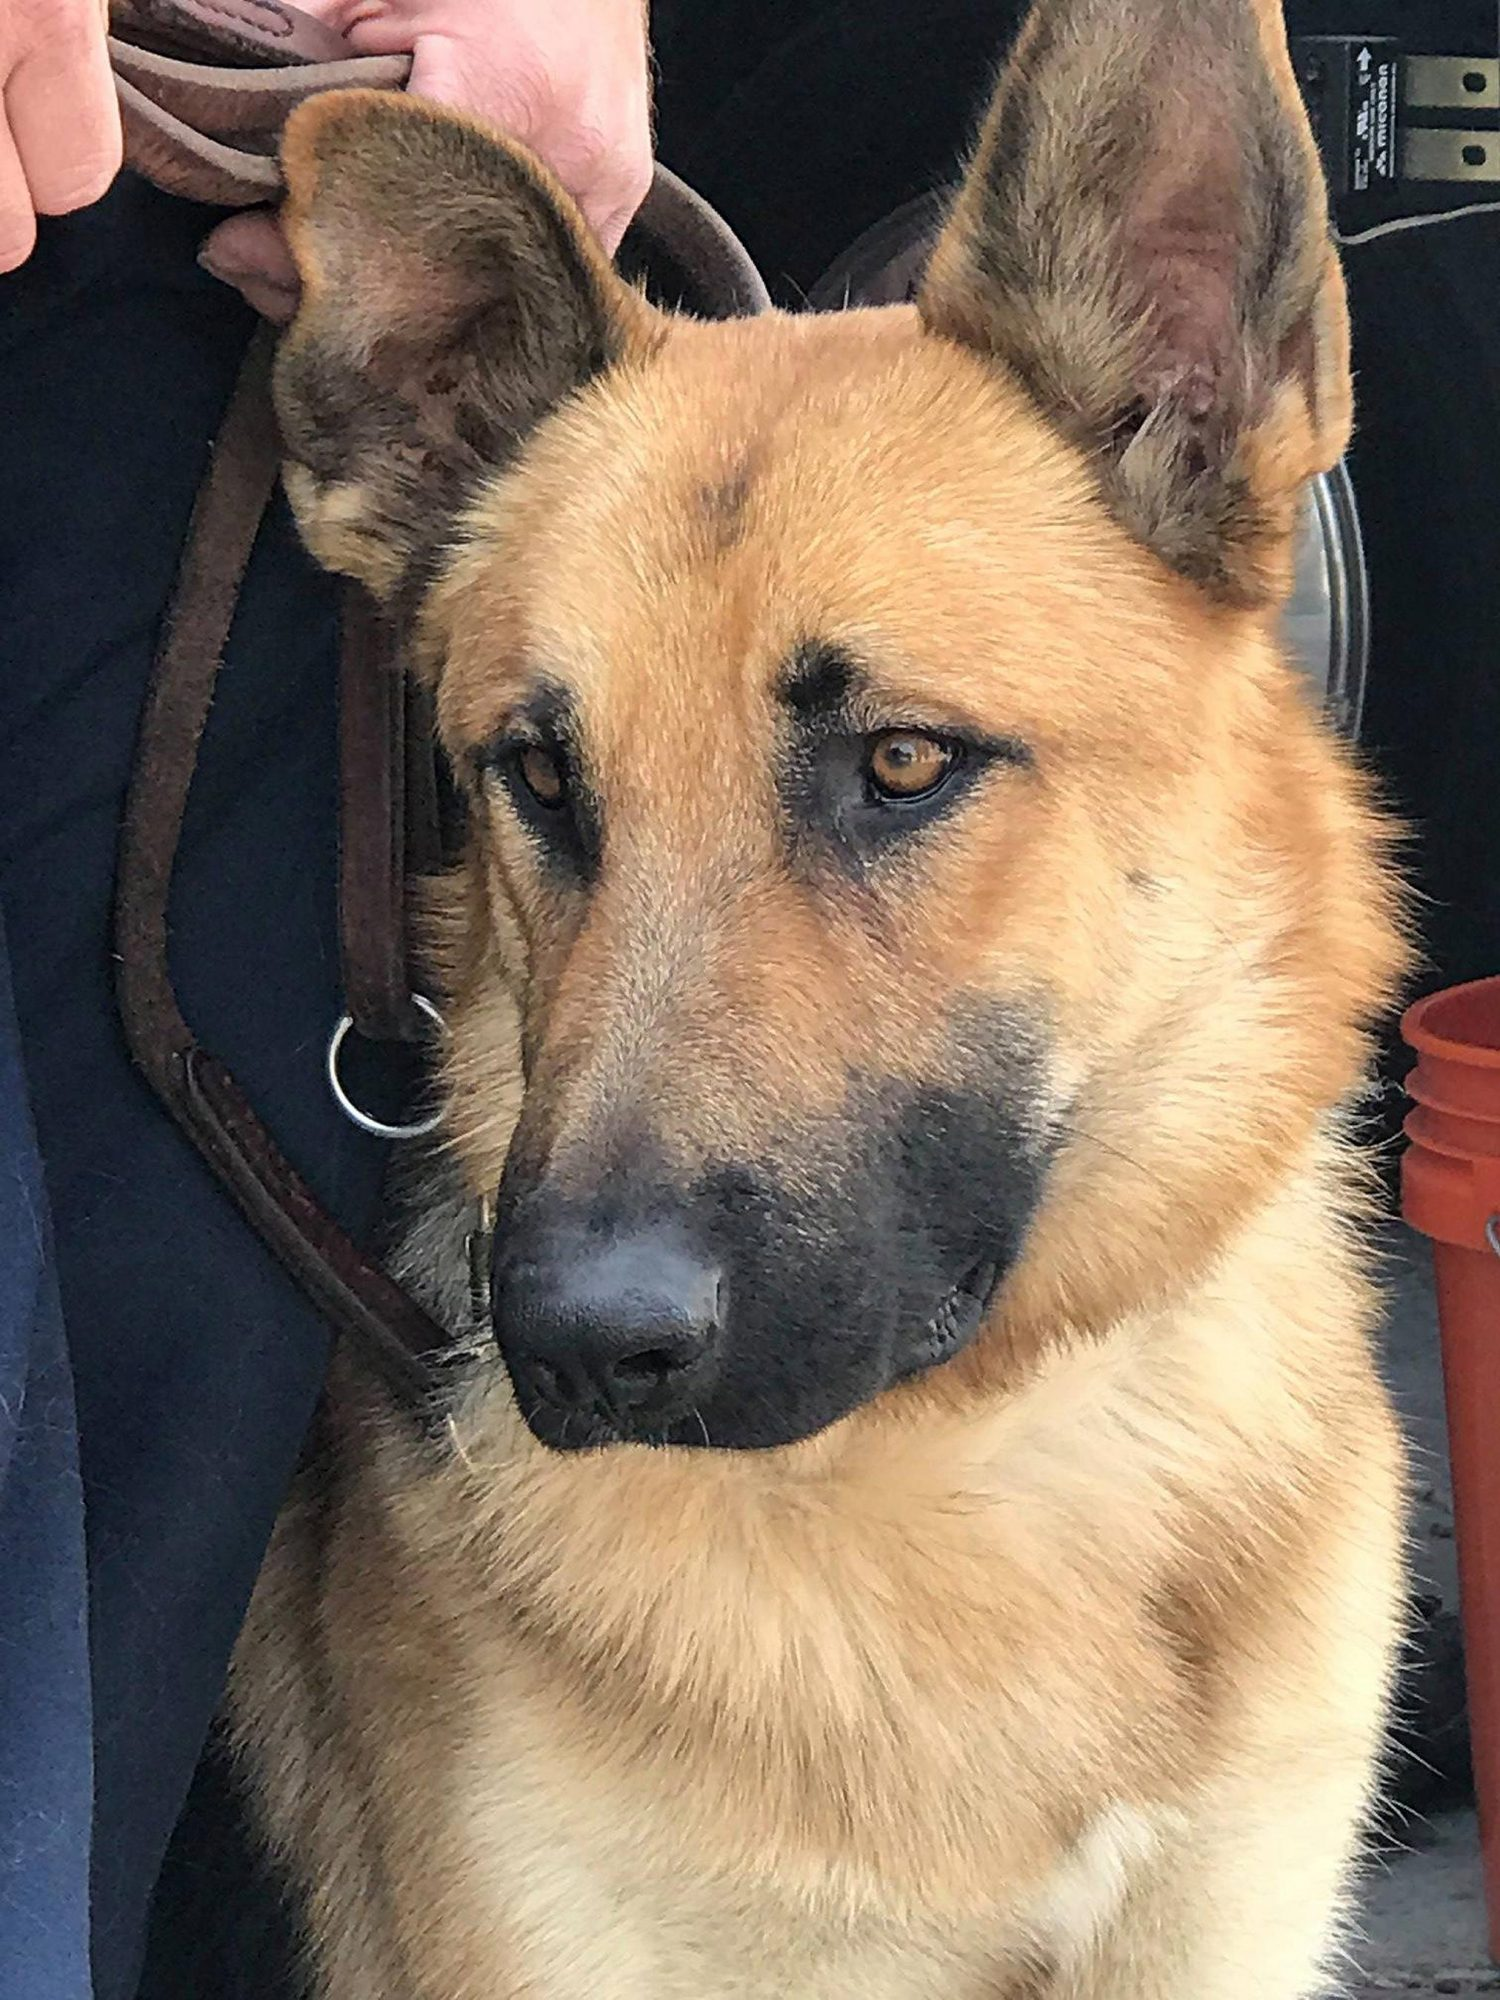 firefighter-adopts-stray-dog-2